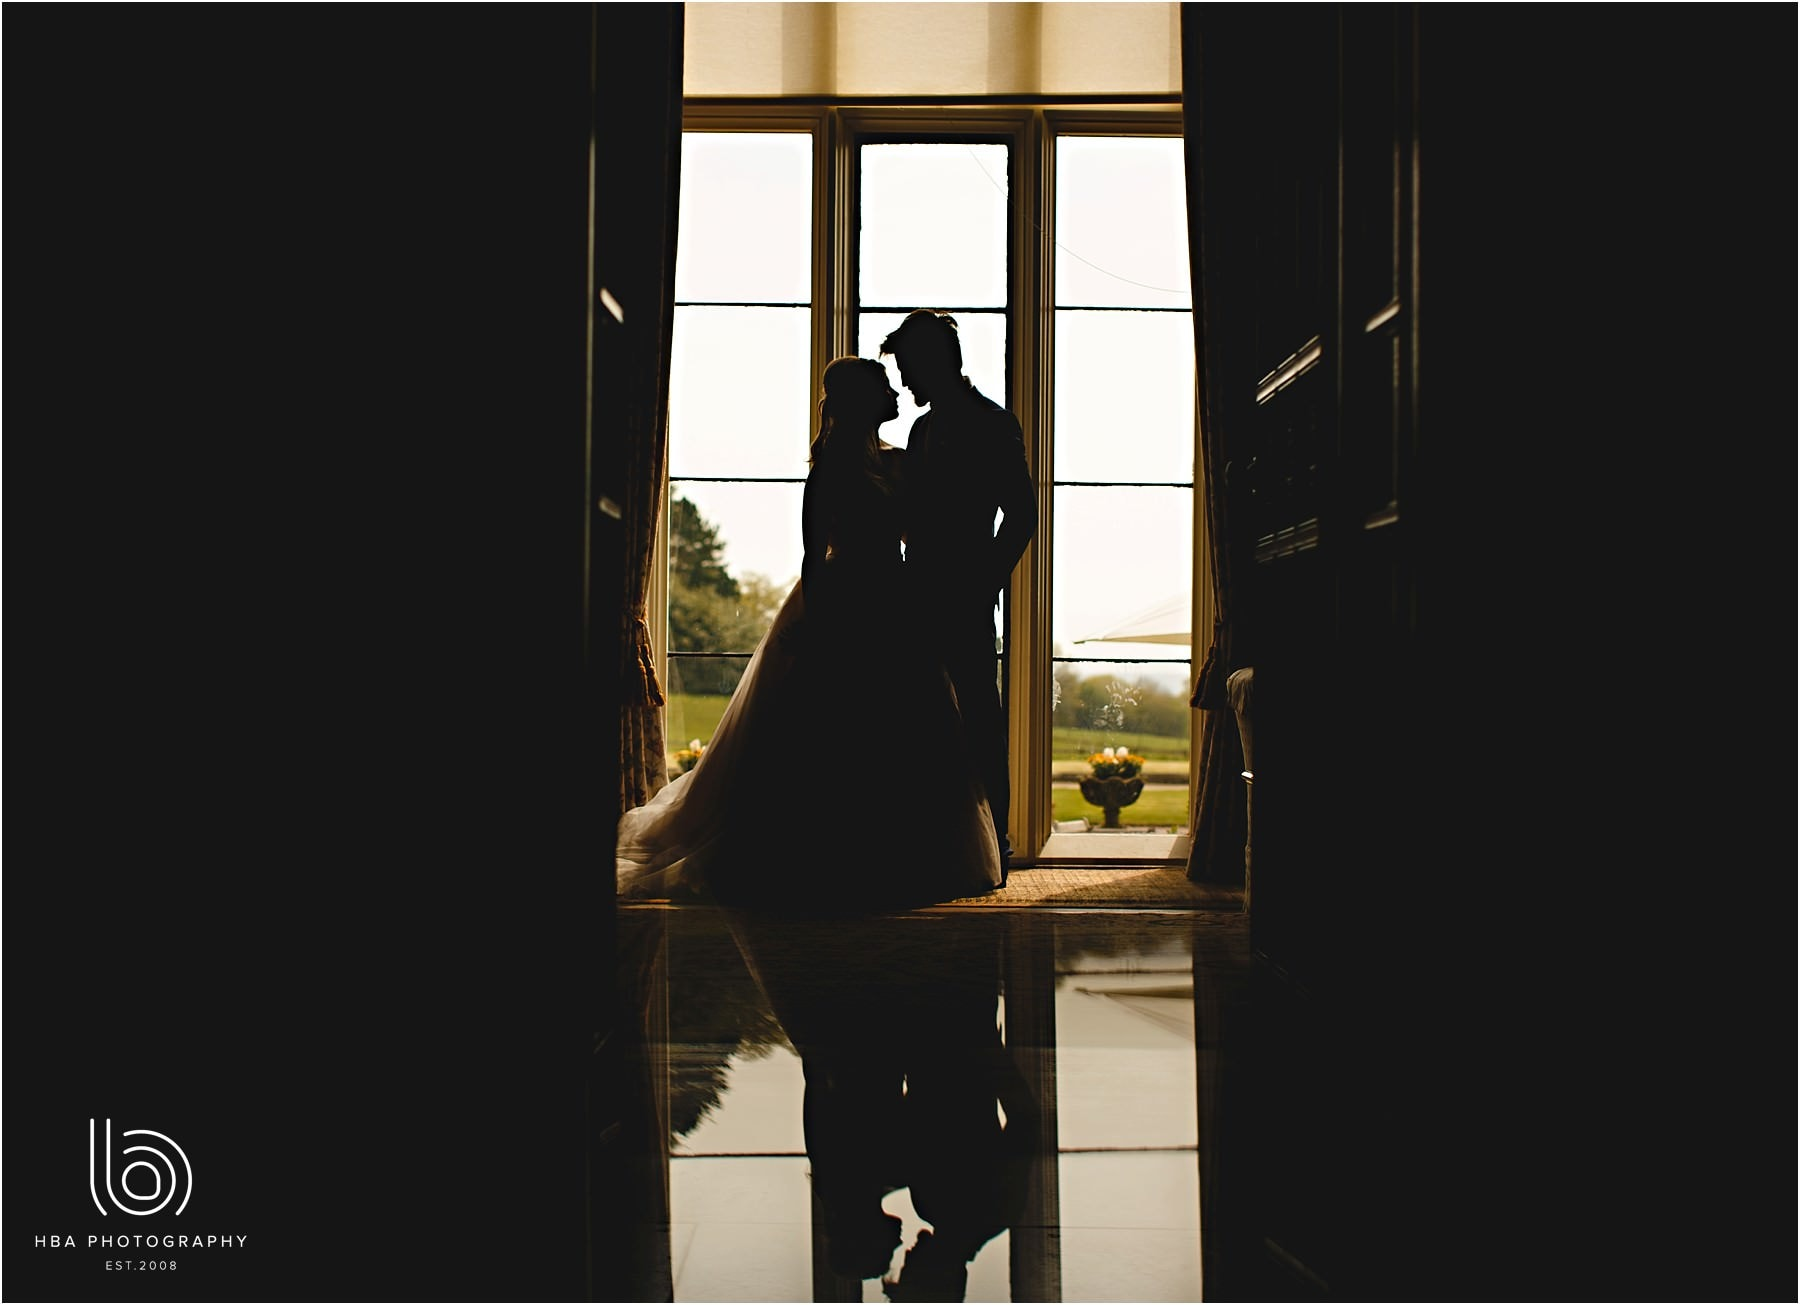 a reflection of the bride and groom in a window